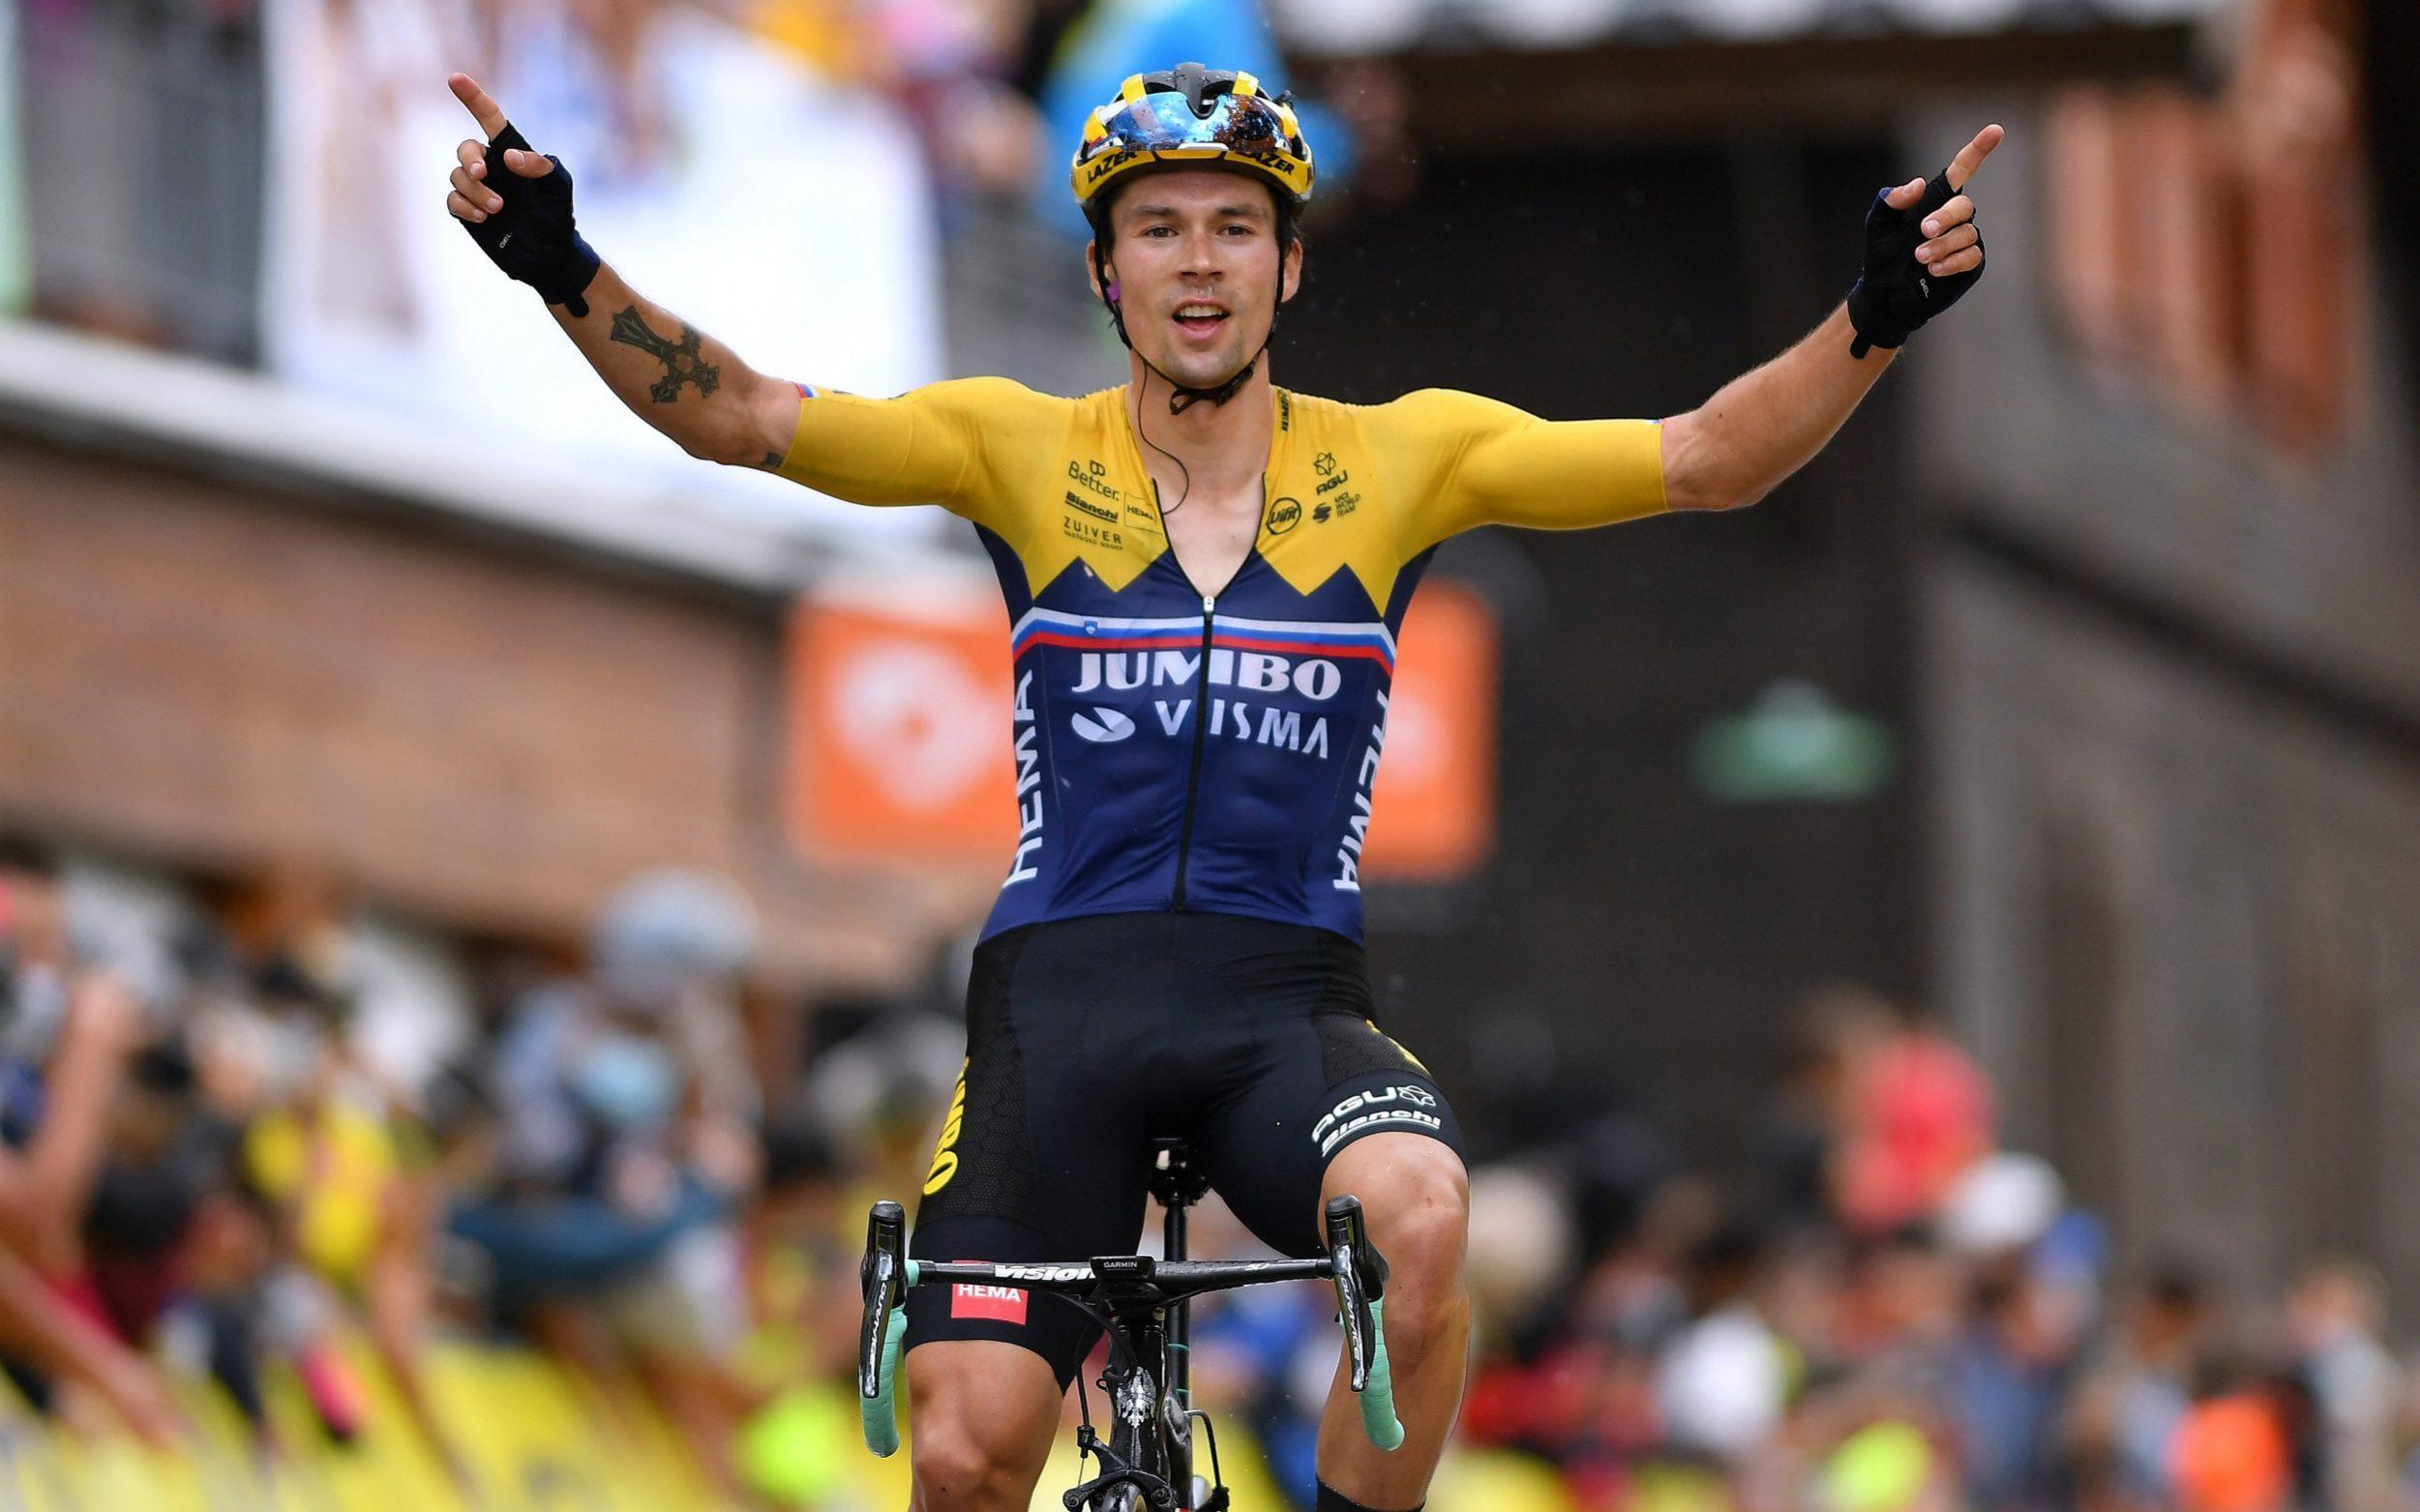 Primoz Roglic wins stage two of Criterium du Dauphine to hit form ahead of Tour de France